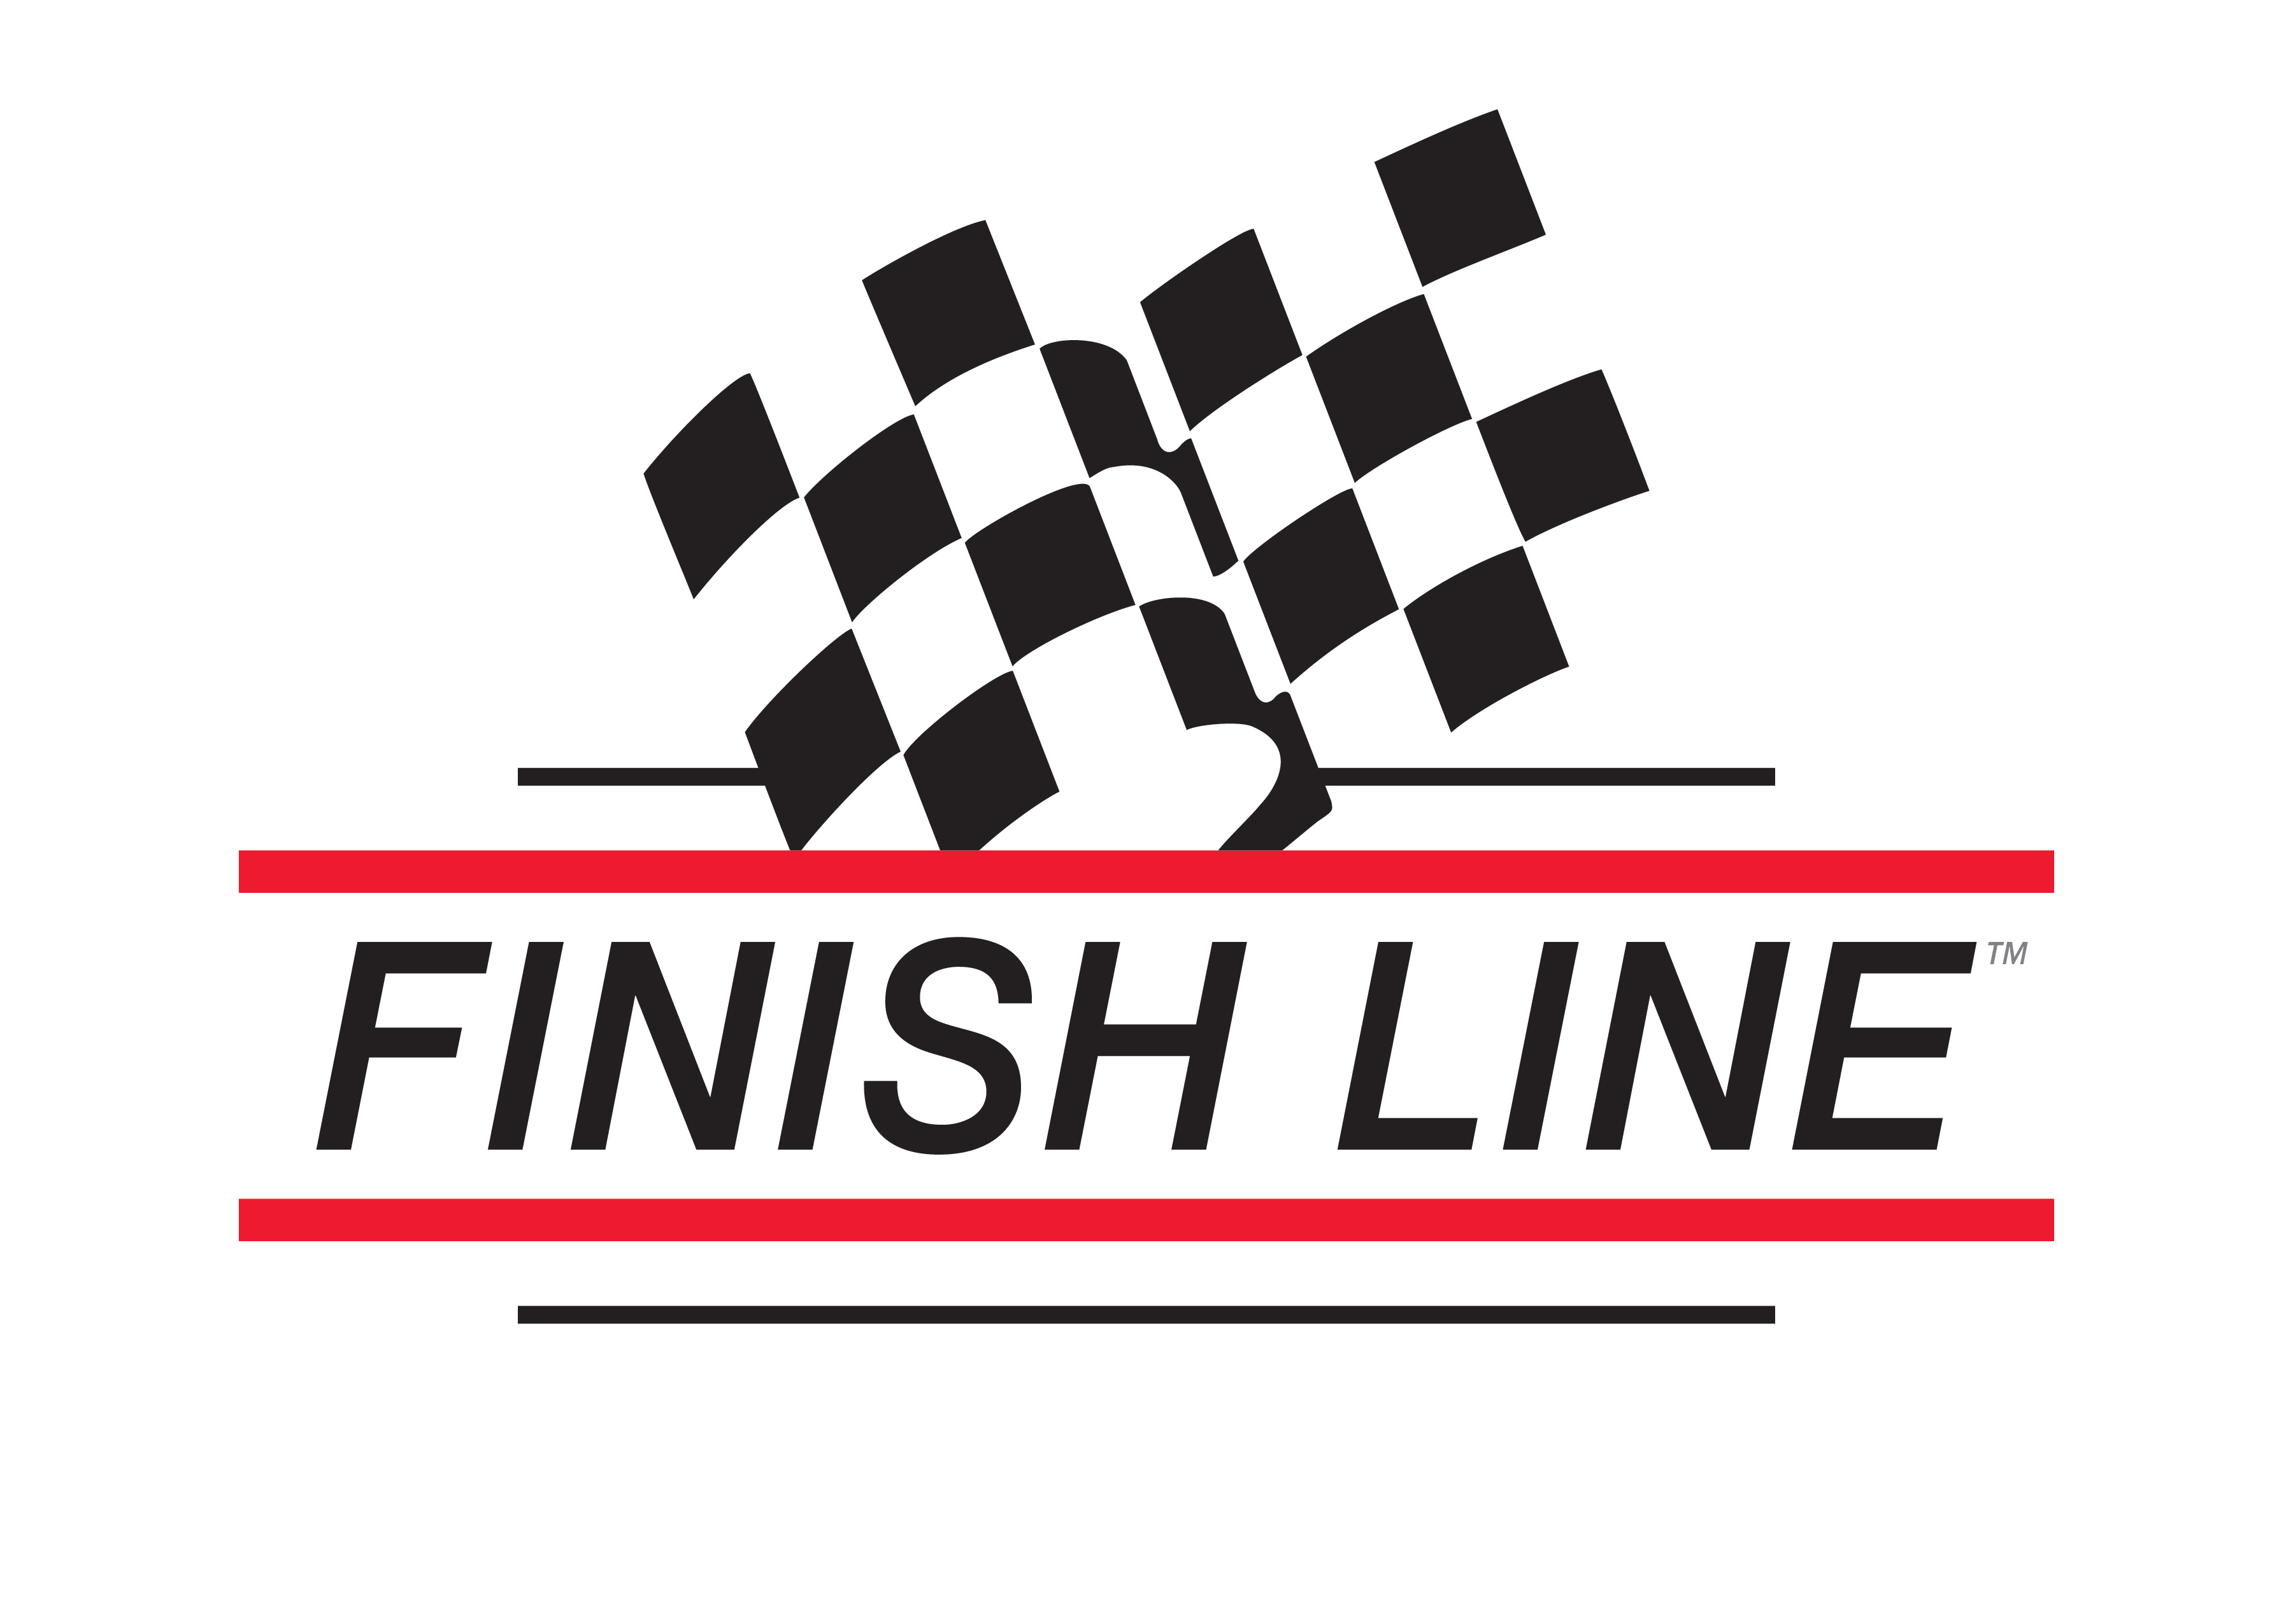 race car finish line clip art Book Covers